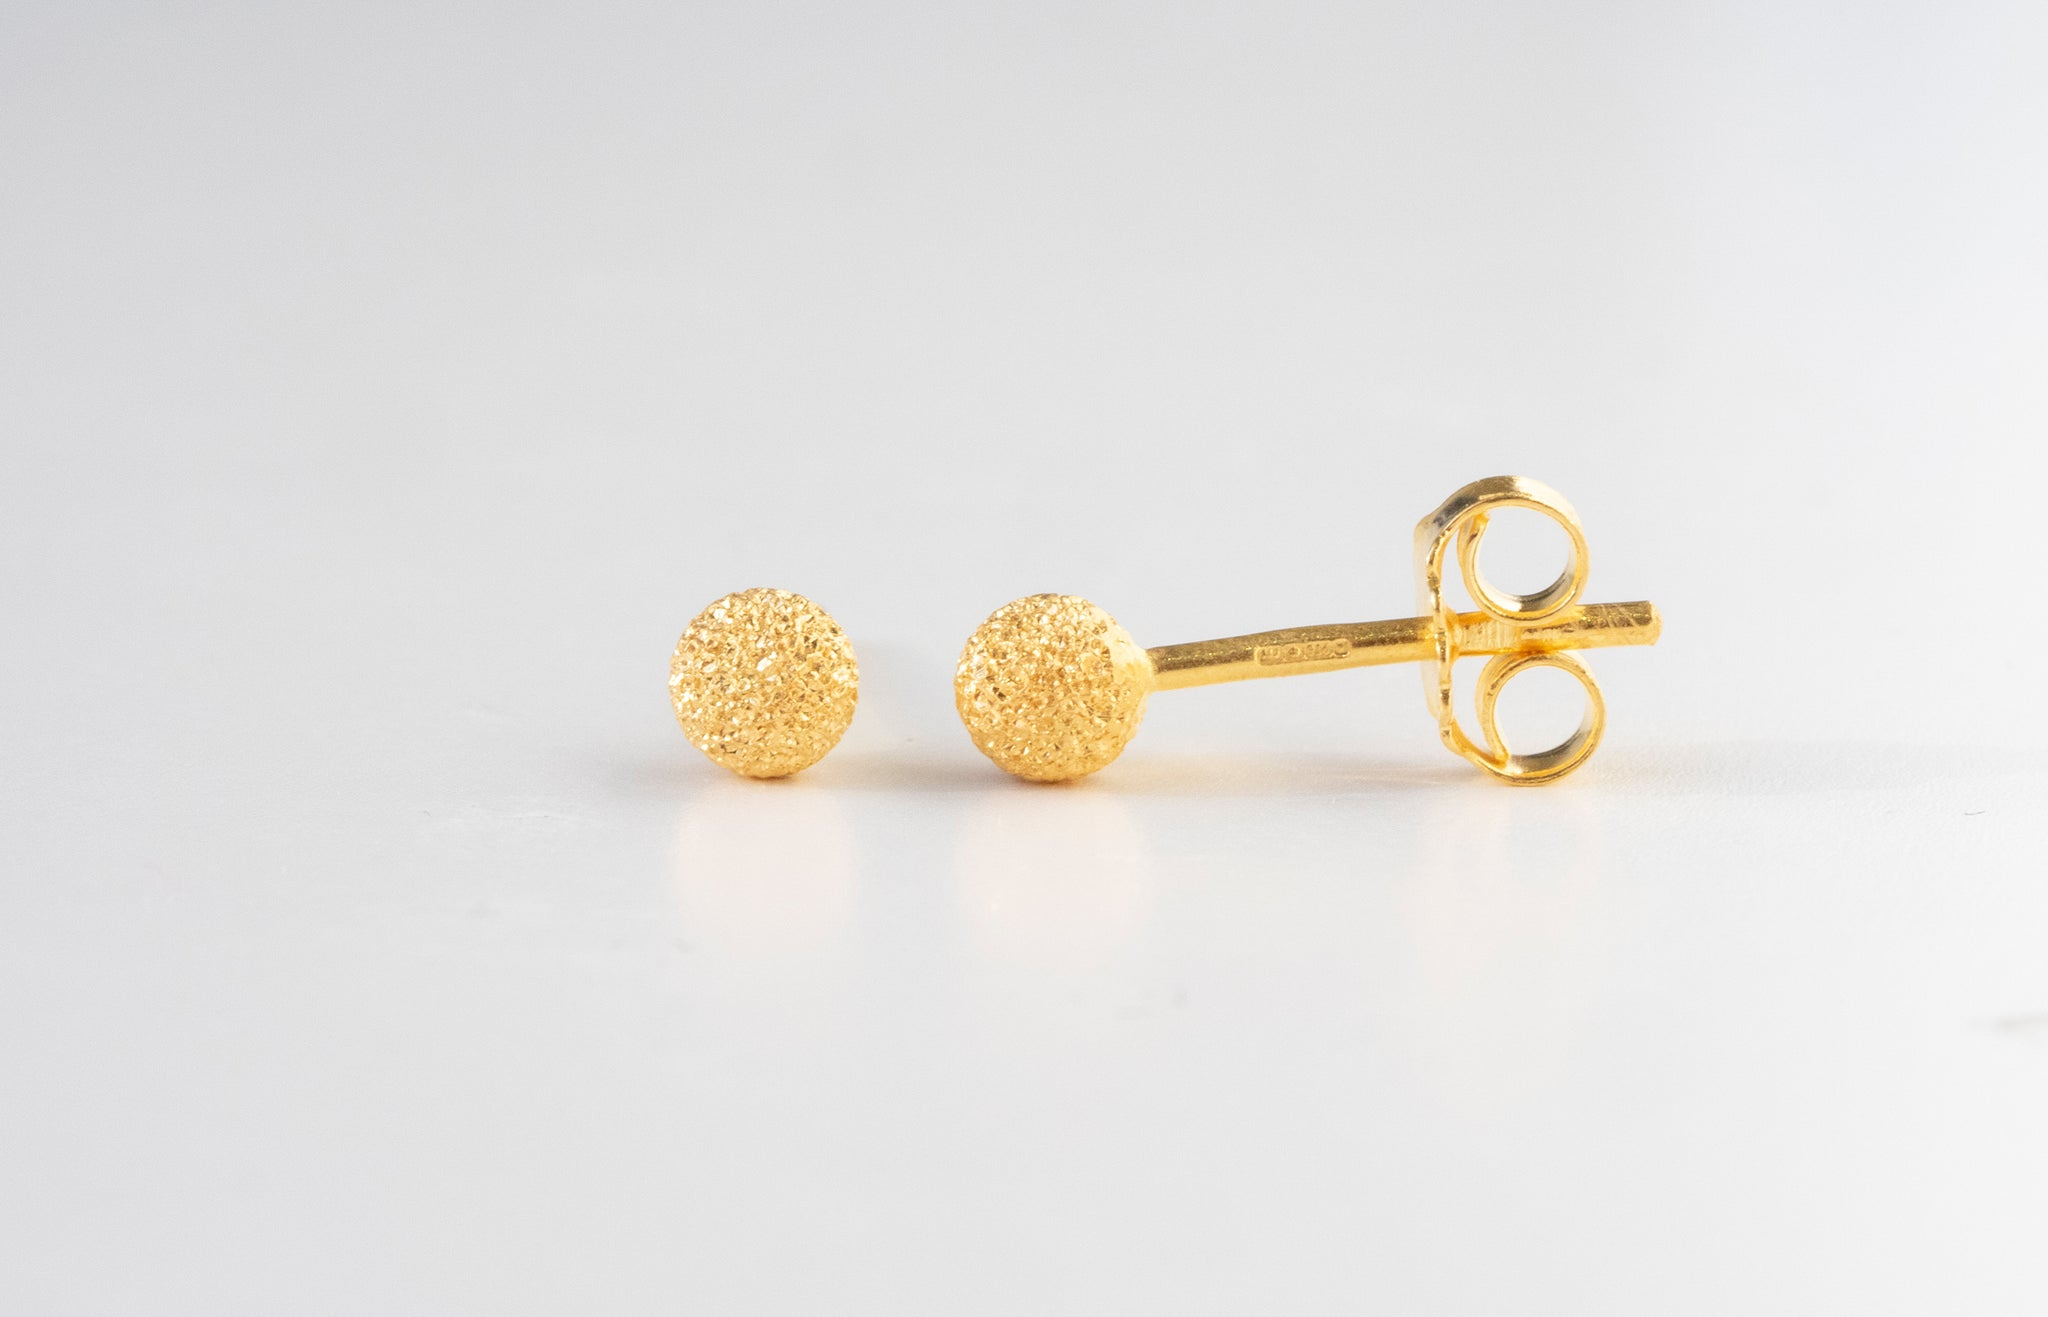 22ct Gold Diamond Cut Stud Earrings with Push Backs (1.3g) E-7759